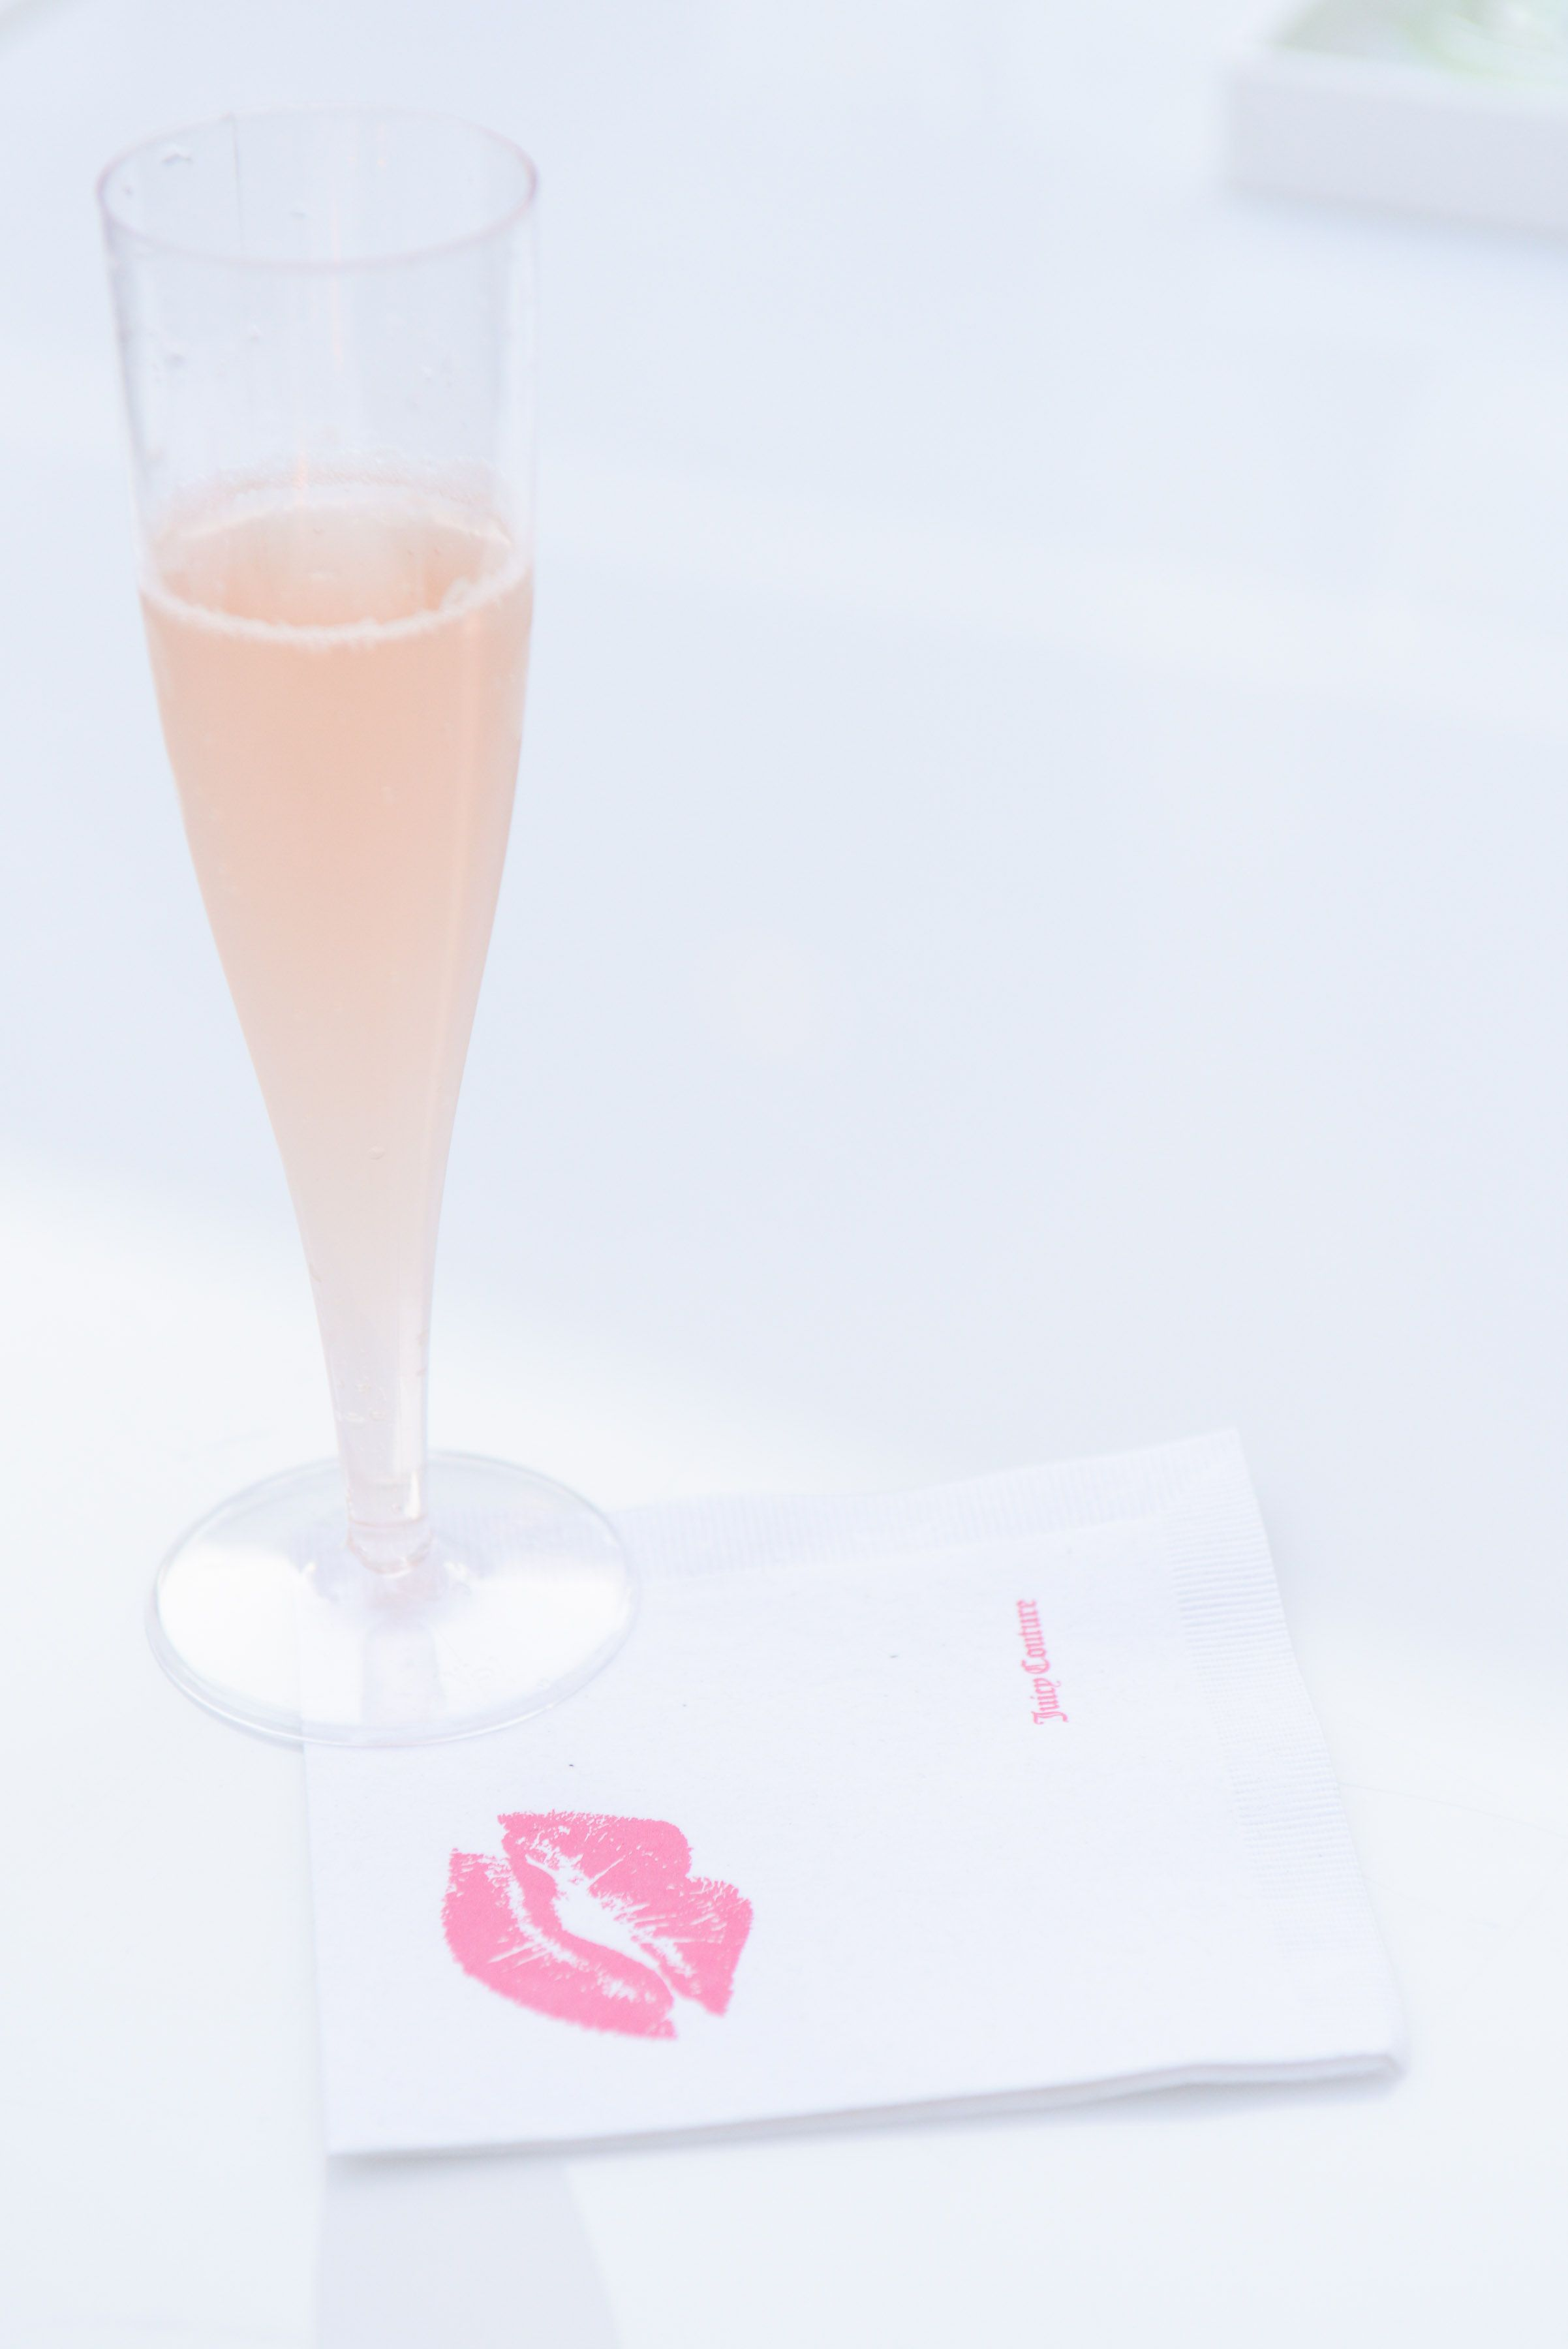 Personalized cocktail napkins and champange #JuicySpring13 #JuicyParty